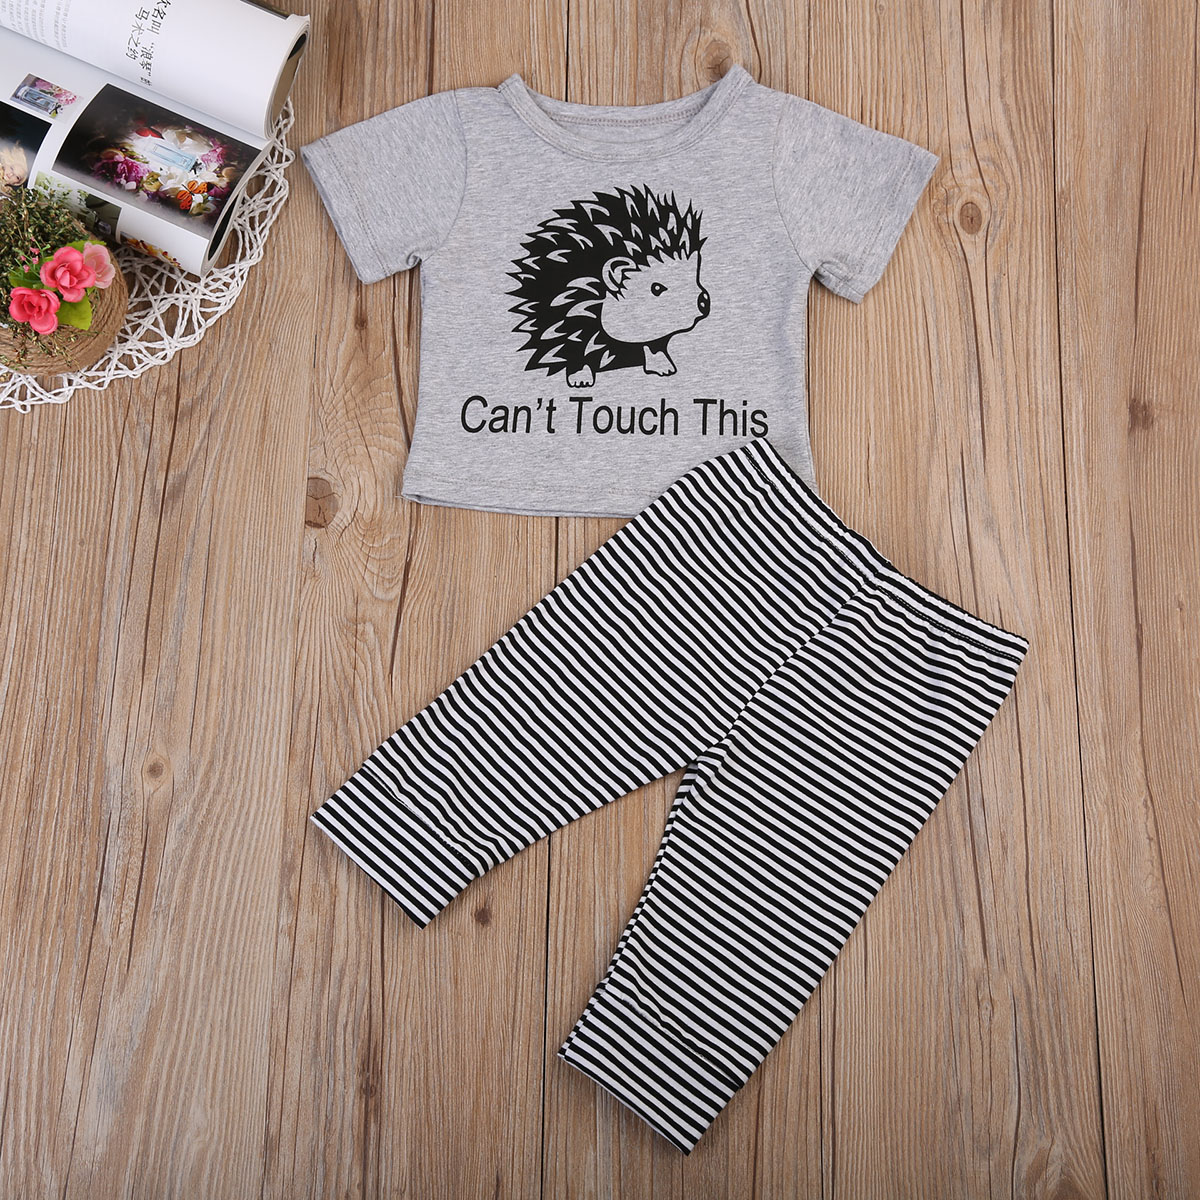 Cute Cotton Newborn Infant Baby Boy Striped Outfits Clothes Casual T-shirt Tops+Long Pants 2pcs Set